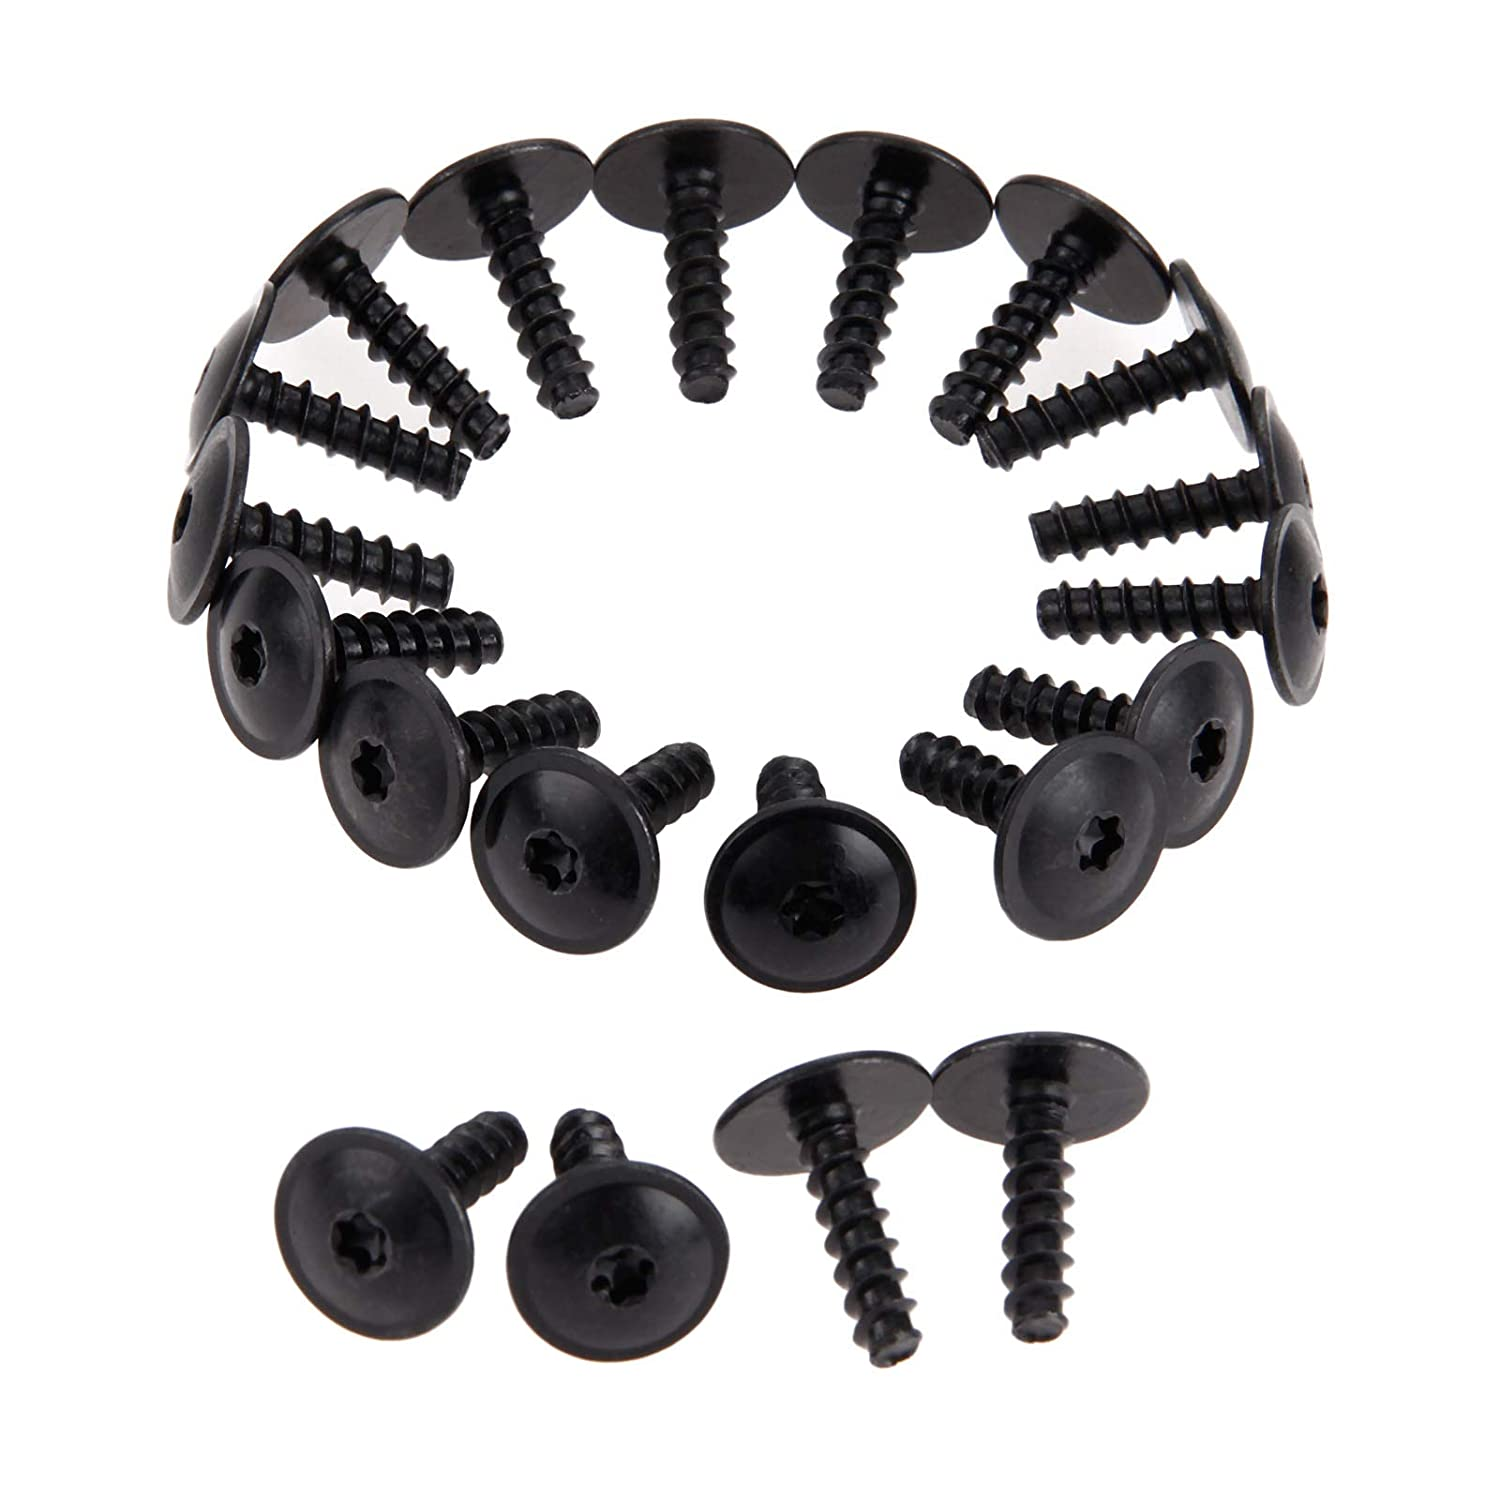 Mtsooning 10 Pcs Car Engine Cover Wheel Arch Inner Liner Mud Flaps Fender Mud Splash Guard Torx Screws Self Tapping N90775001